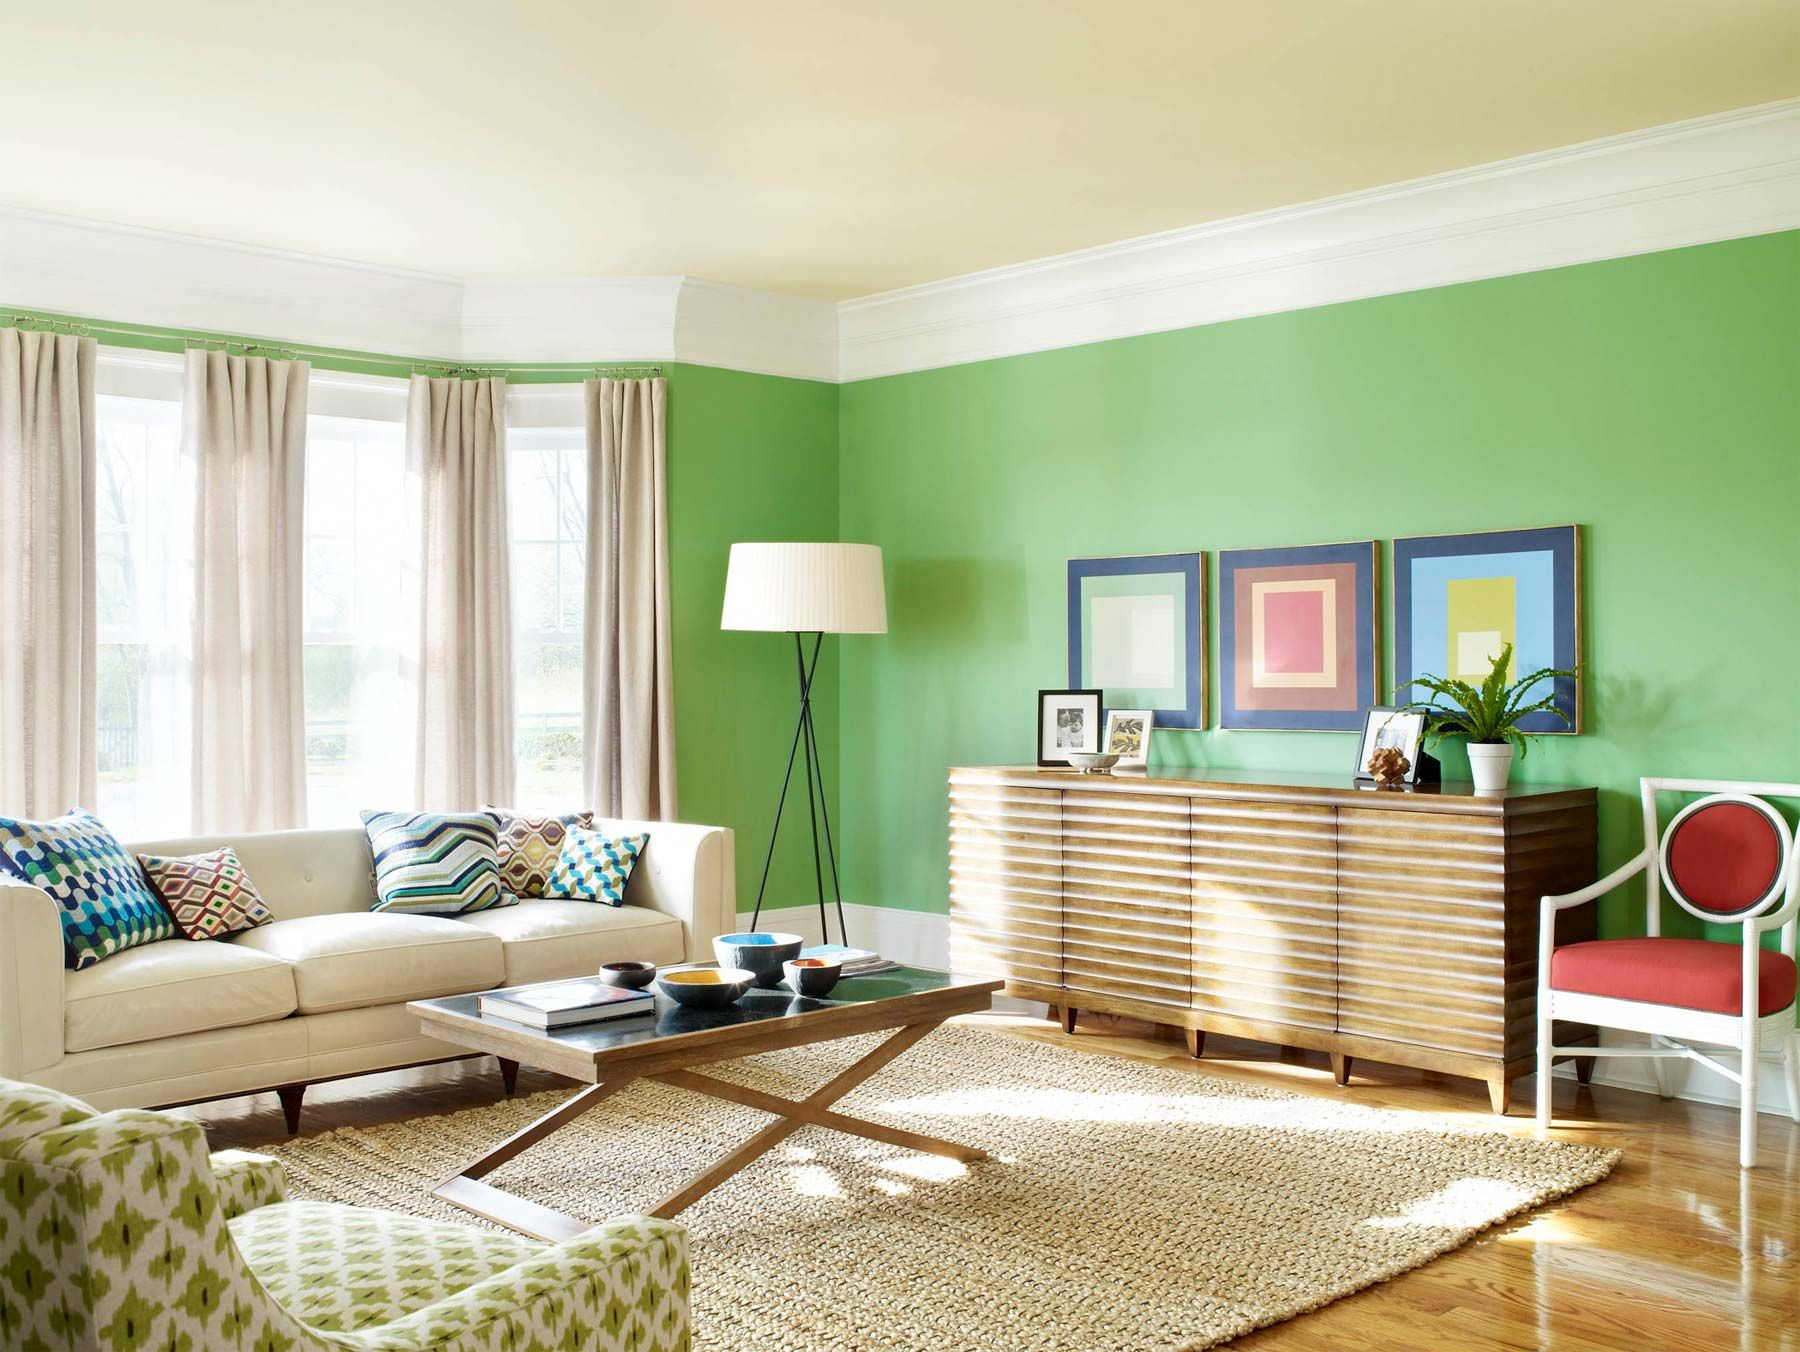 What Color To Paint Your Living Room Always Consider Interior Designers For Quality Work Interior